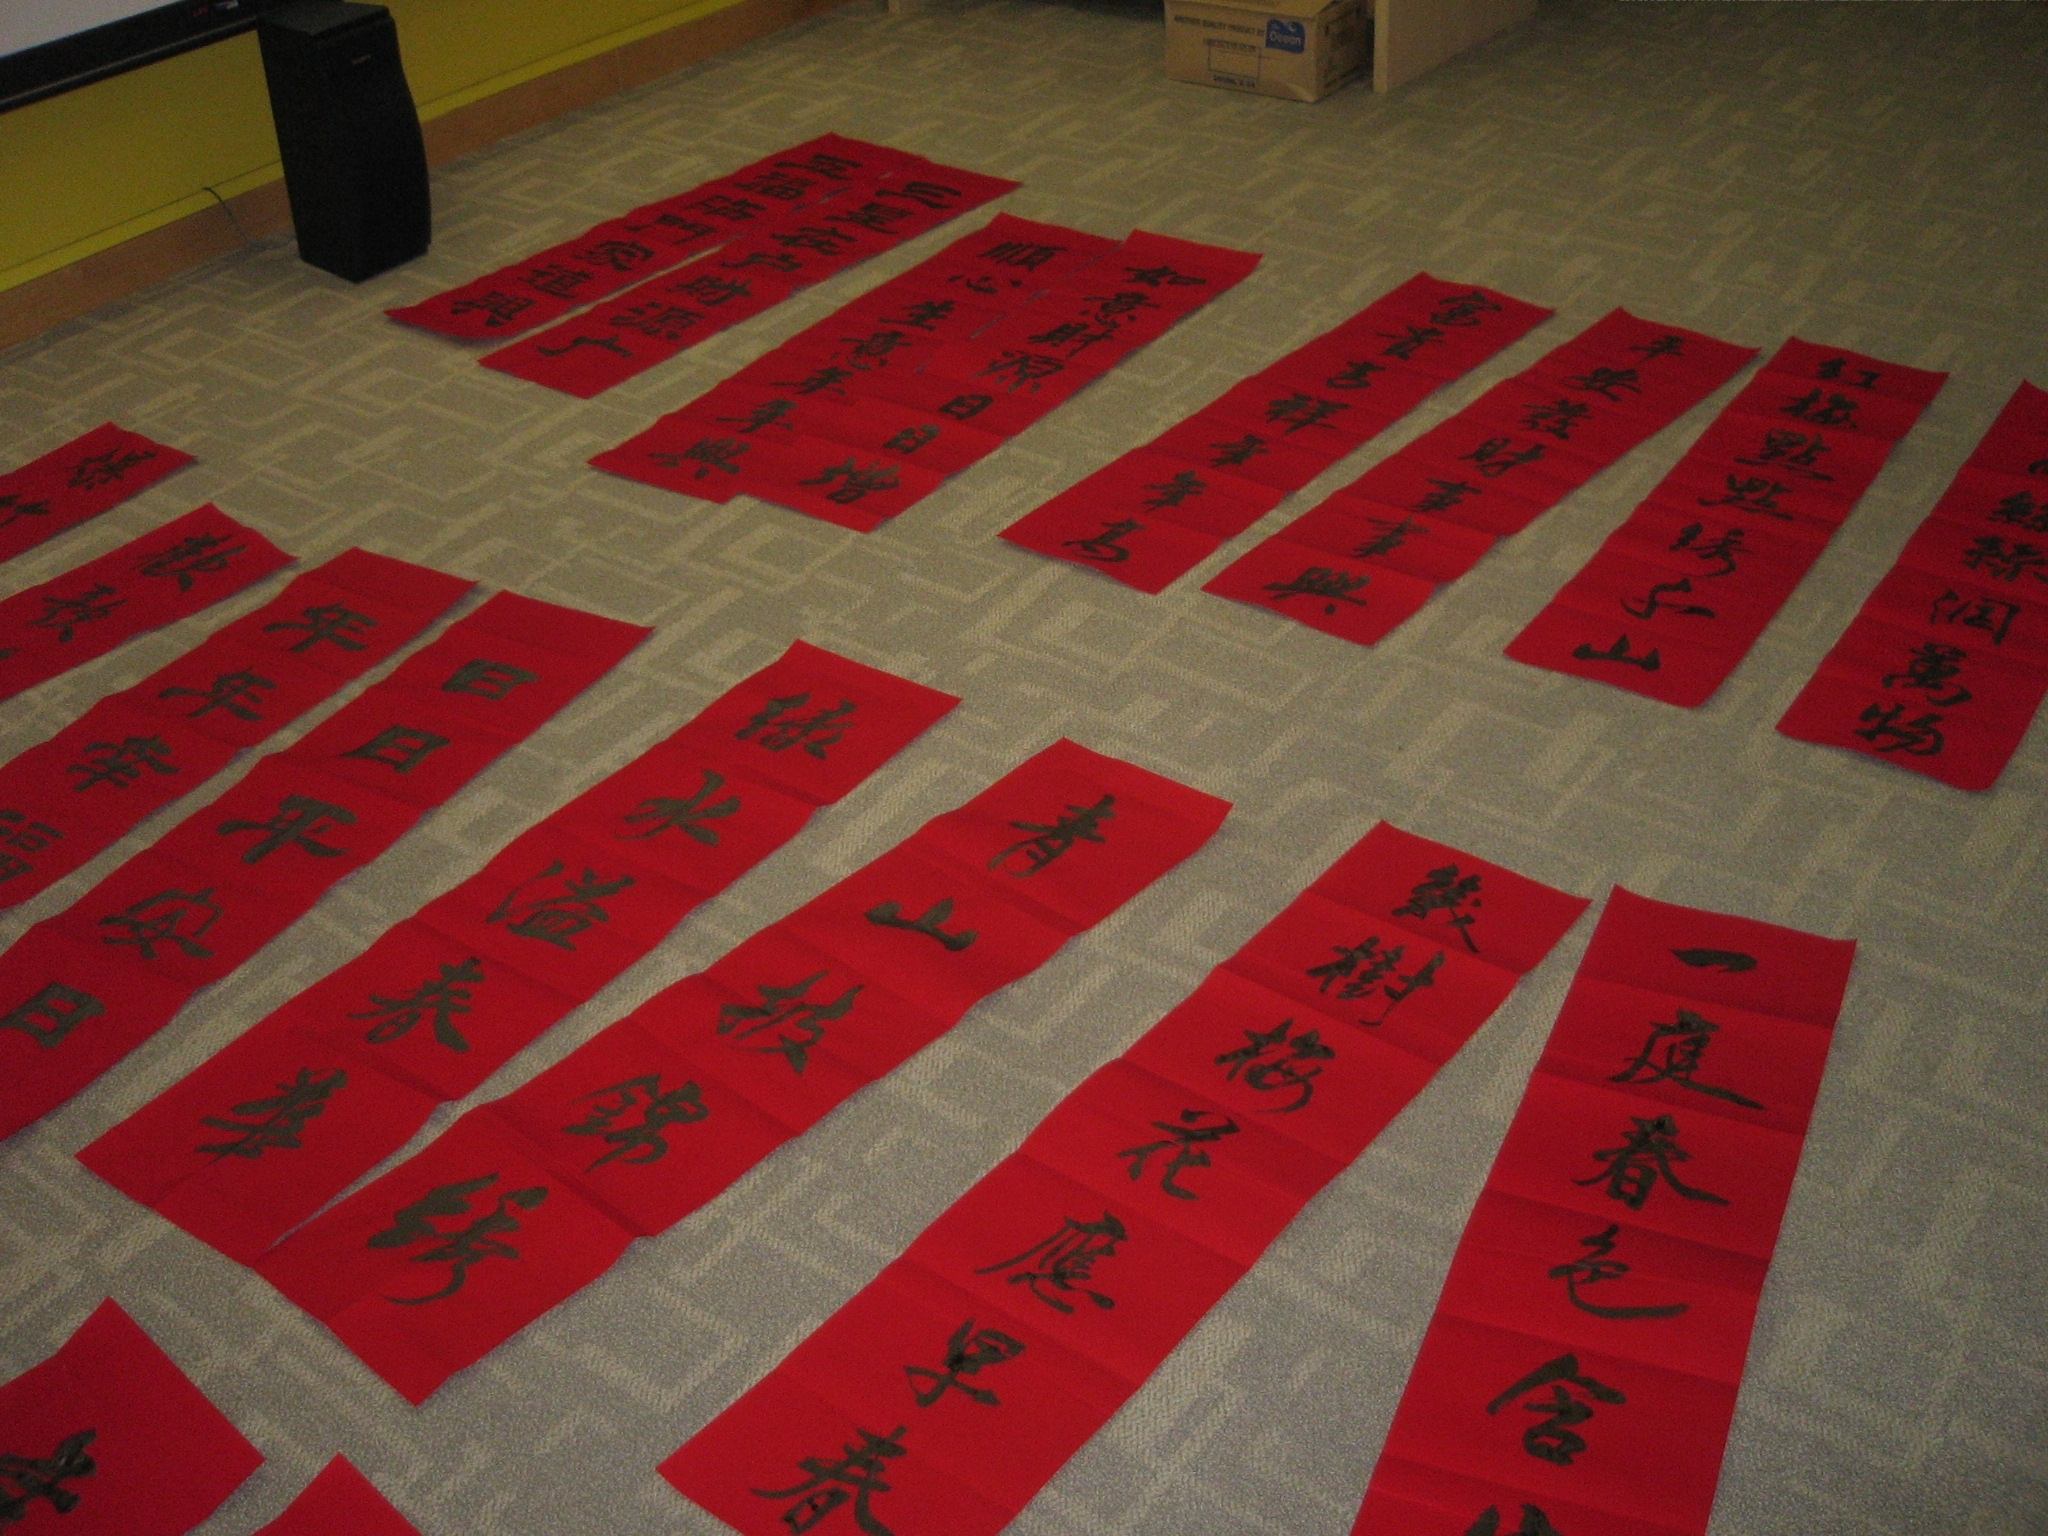 Writing up a storm for chinese new year linus nus libraries blog and used as chinese new year decorations are seen as messages of hope fulfillment and happiness for the new year and in the worst of times kristyandbryce Gallery